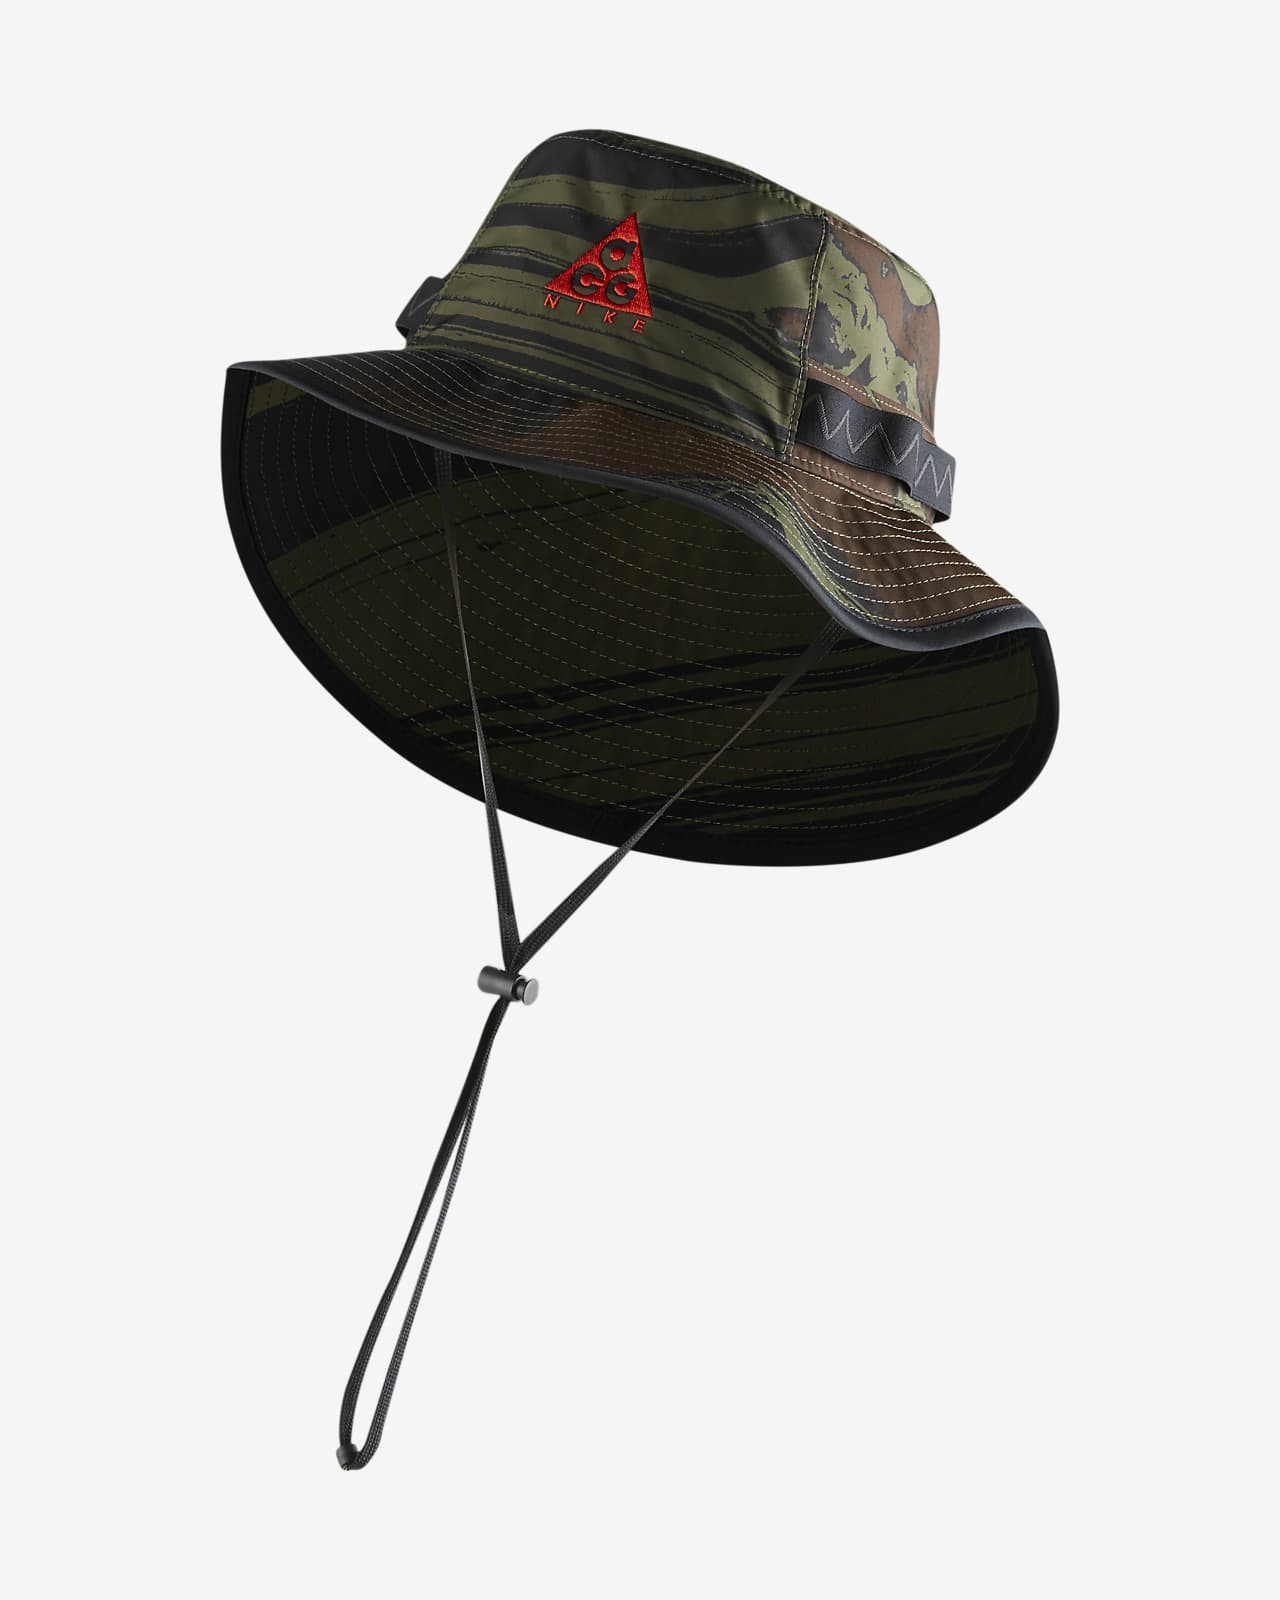 Nike ACG Mt. Fuji Bucket Hat